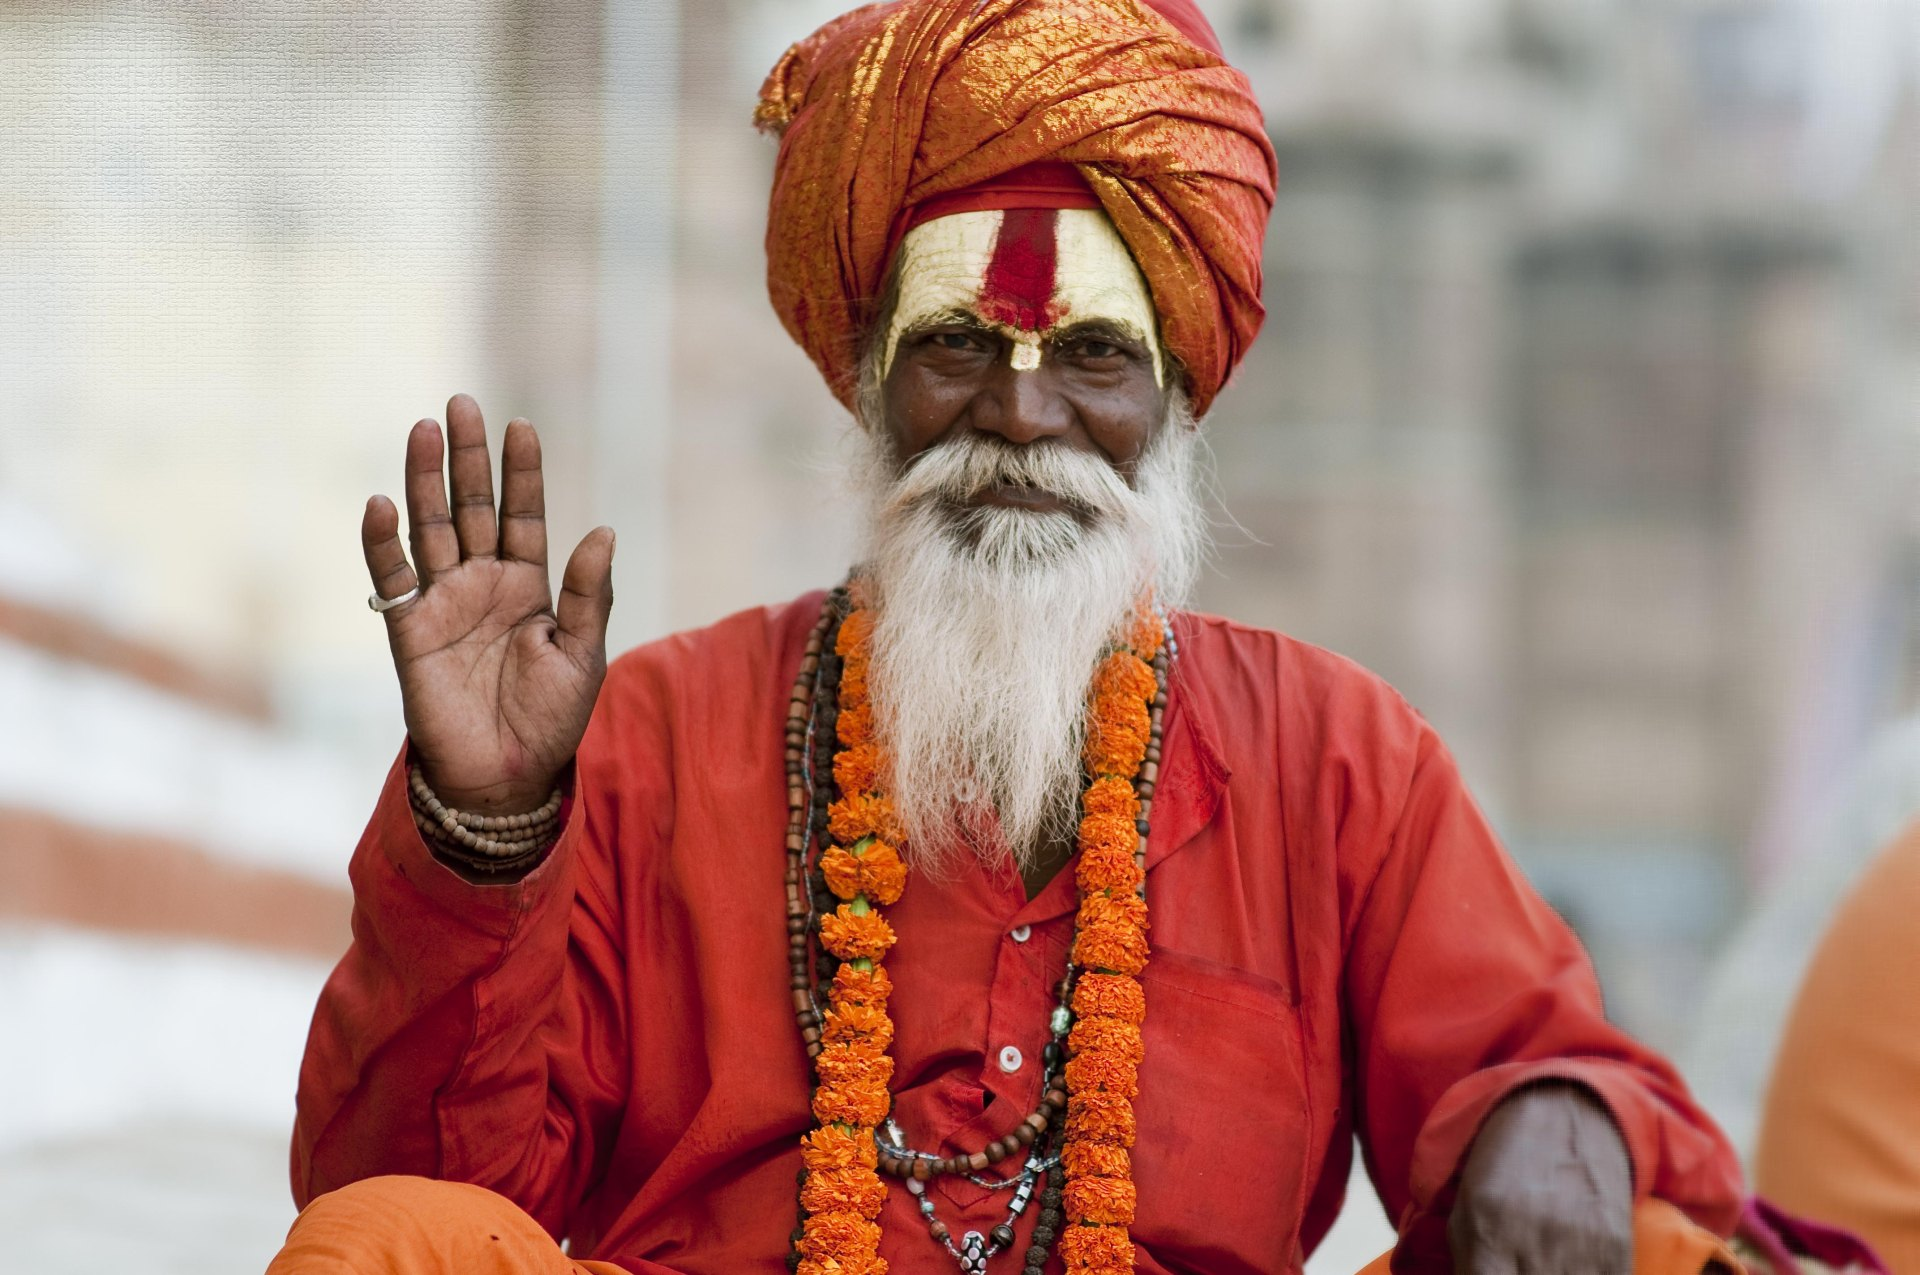 Guru-Sadhu in Varanasi, India